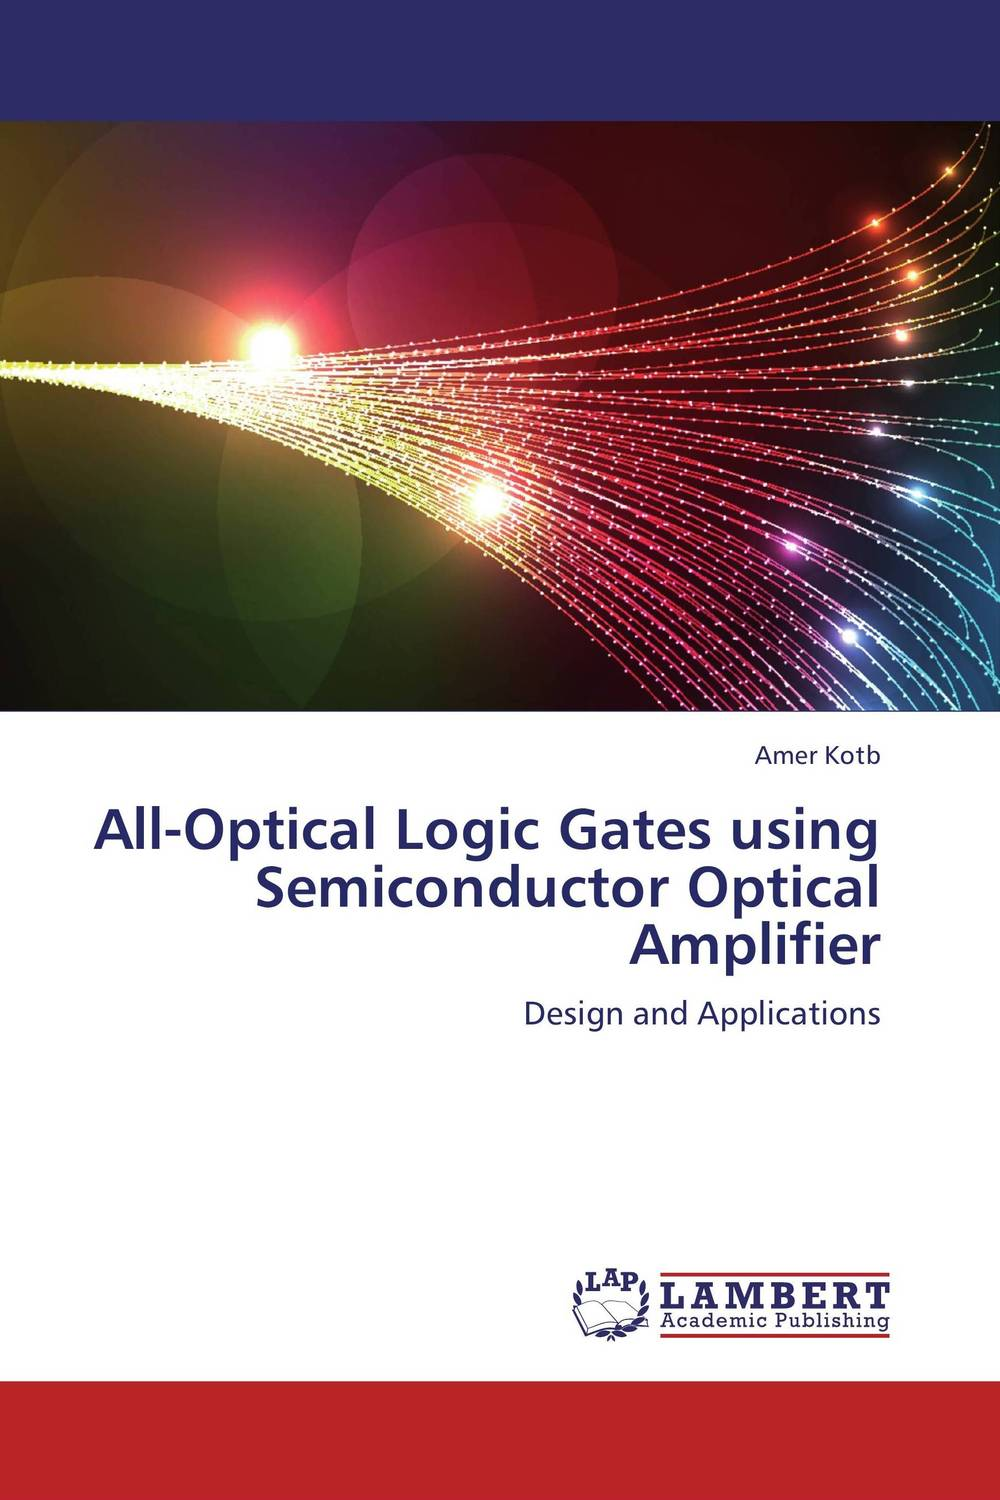 All-Optical Logic Gates using Semiconductor Optical Amplifier